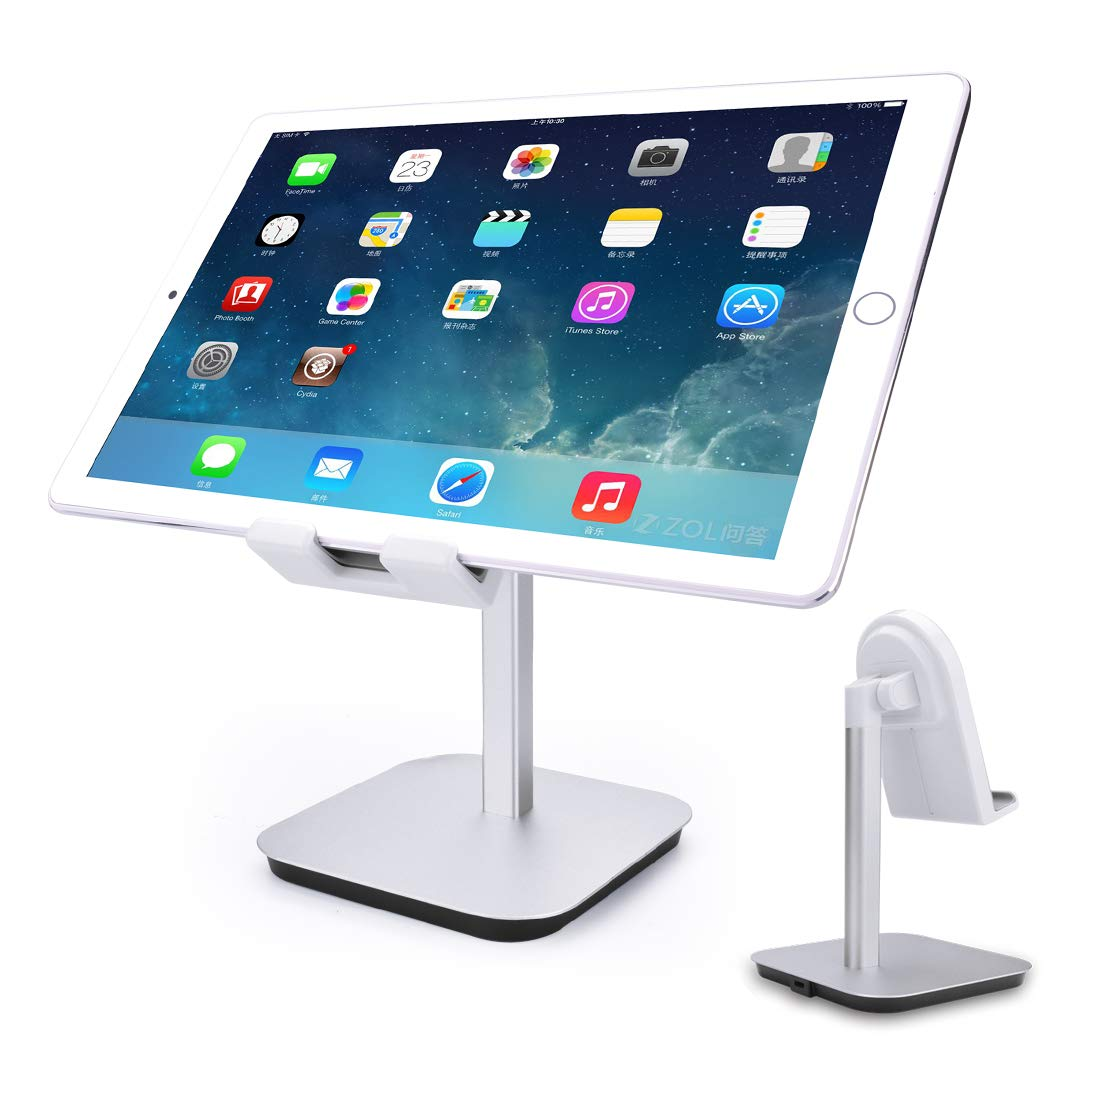 Enjoyable Cell Phone Tablet Stand Adjustable Swivel Aluminum Stand Multi Angle Aluminum Modern Accessories For Desk Desktop Ipad Pro Iphone Silver Gmtry Best Dining Table And Chair Ideas Images Gmtryco